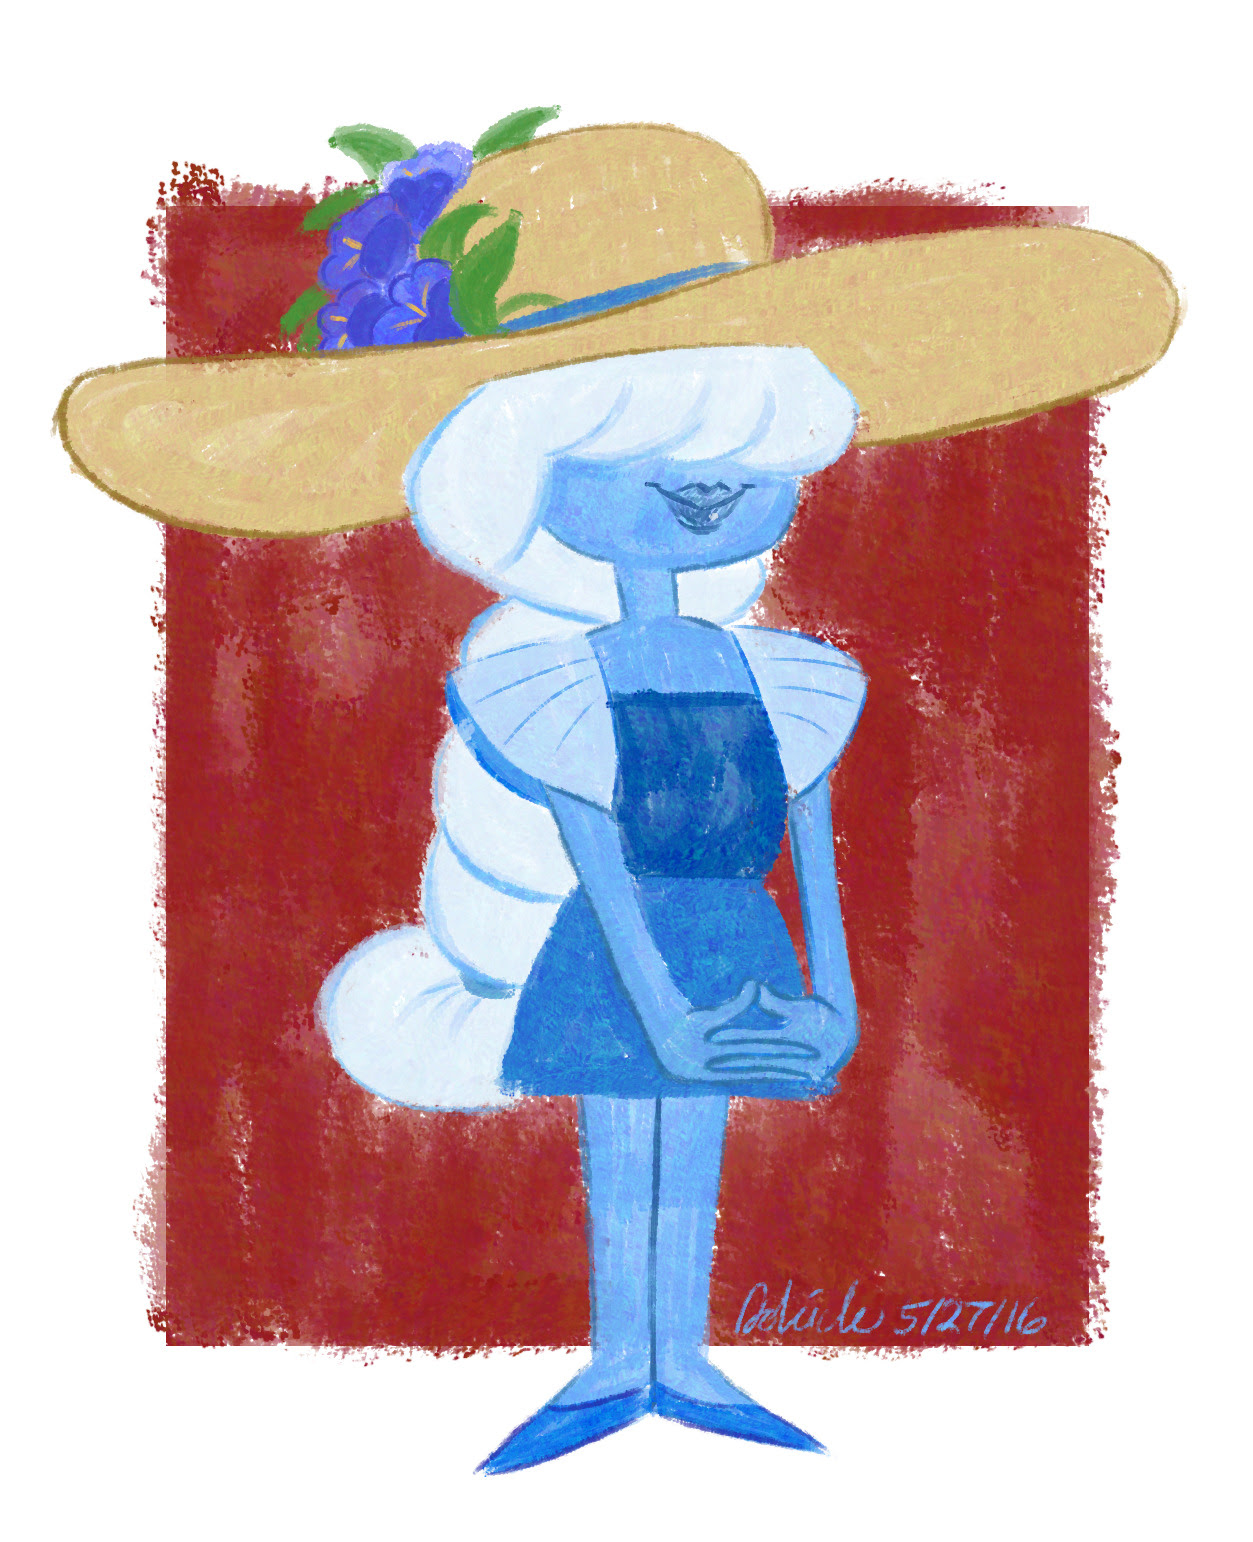 Sapphire in @kyletwebster 's claude monet imitation brush! (free to use as an icon)